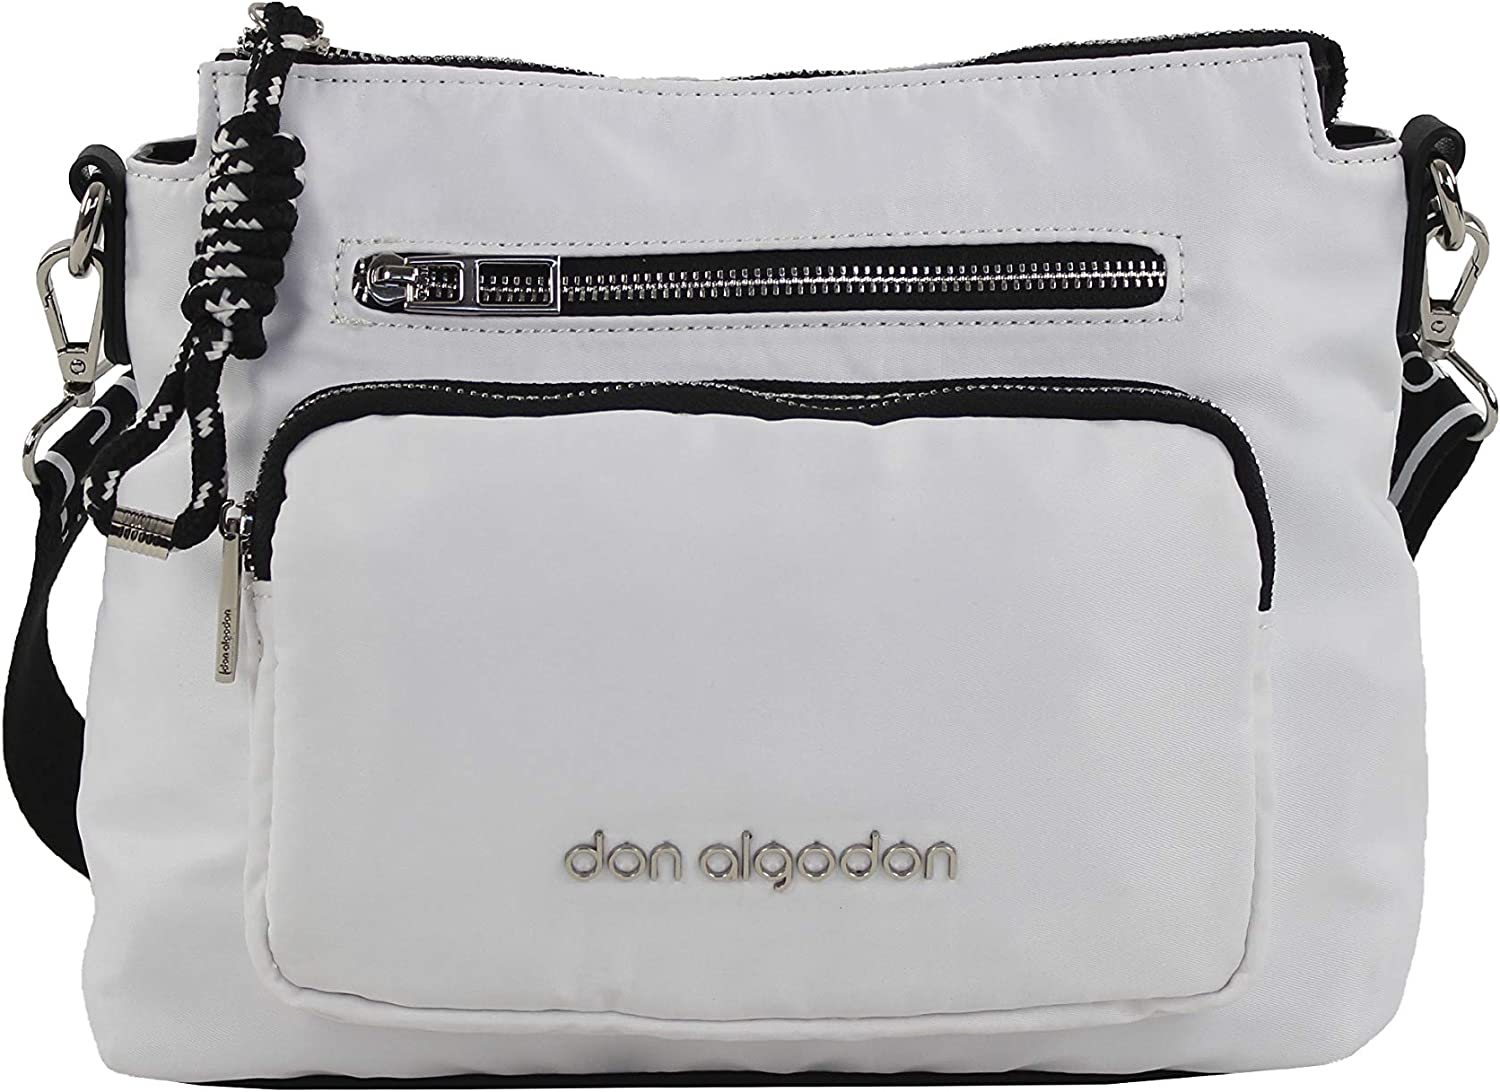 DON ALGODON Casual, Bandolera XL, Blanco: Amazon.es: Equipaje